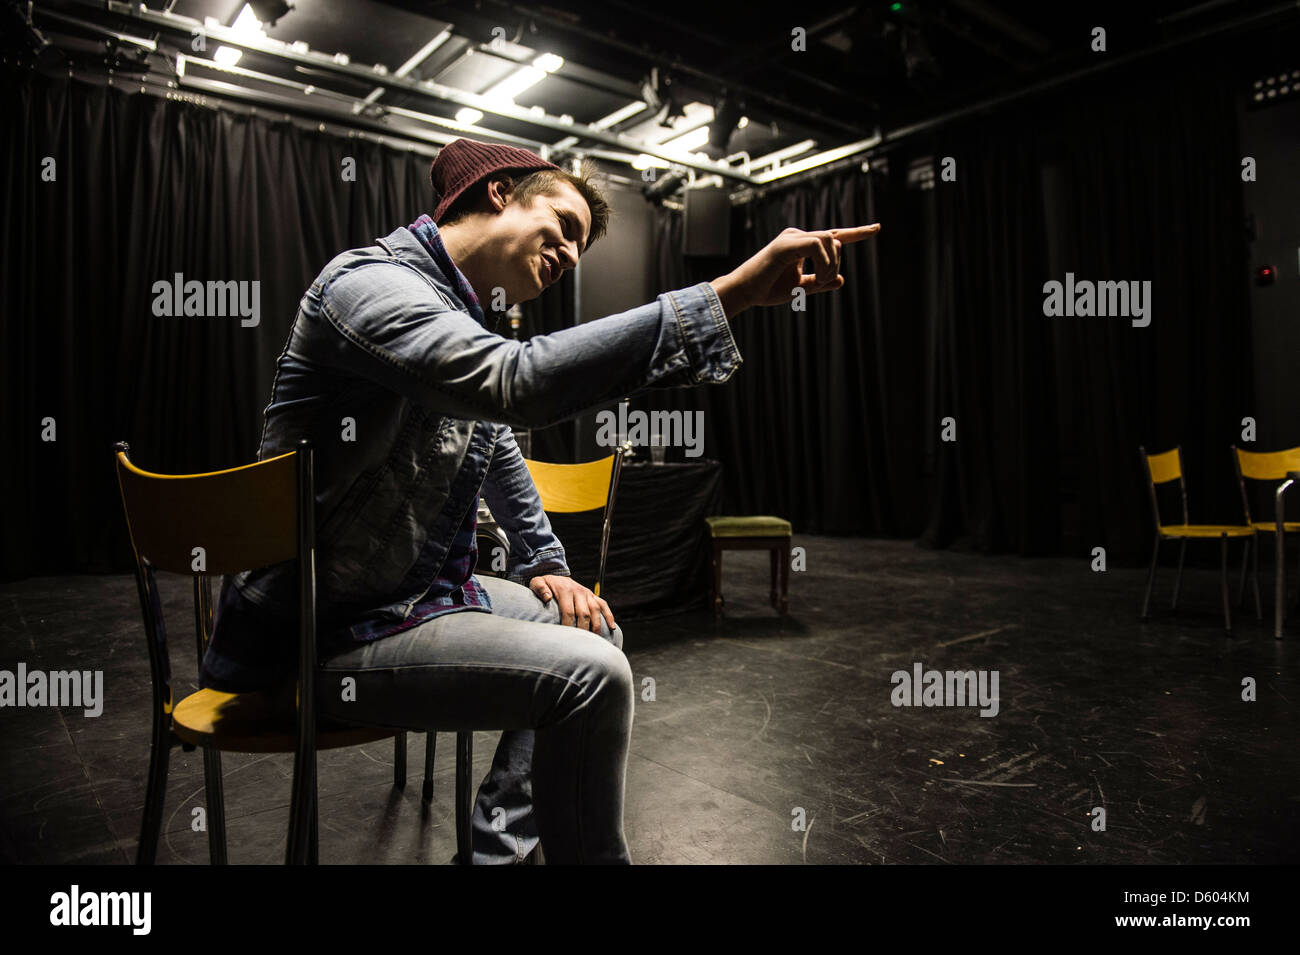 Aberystwyth University student theatre group performing short plays. March 15 2013, UK - Stock Image